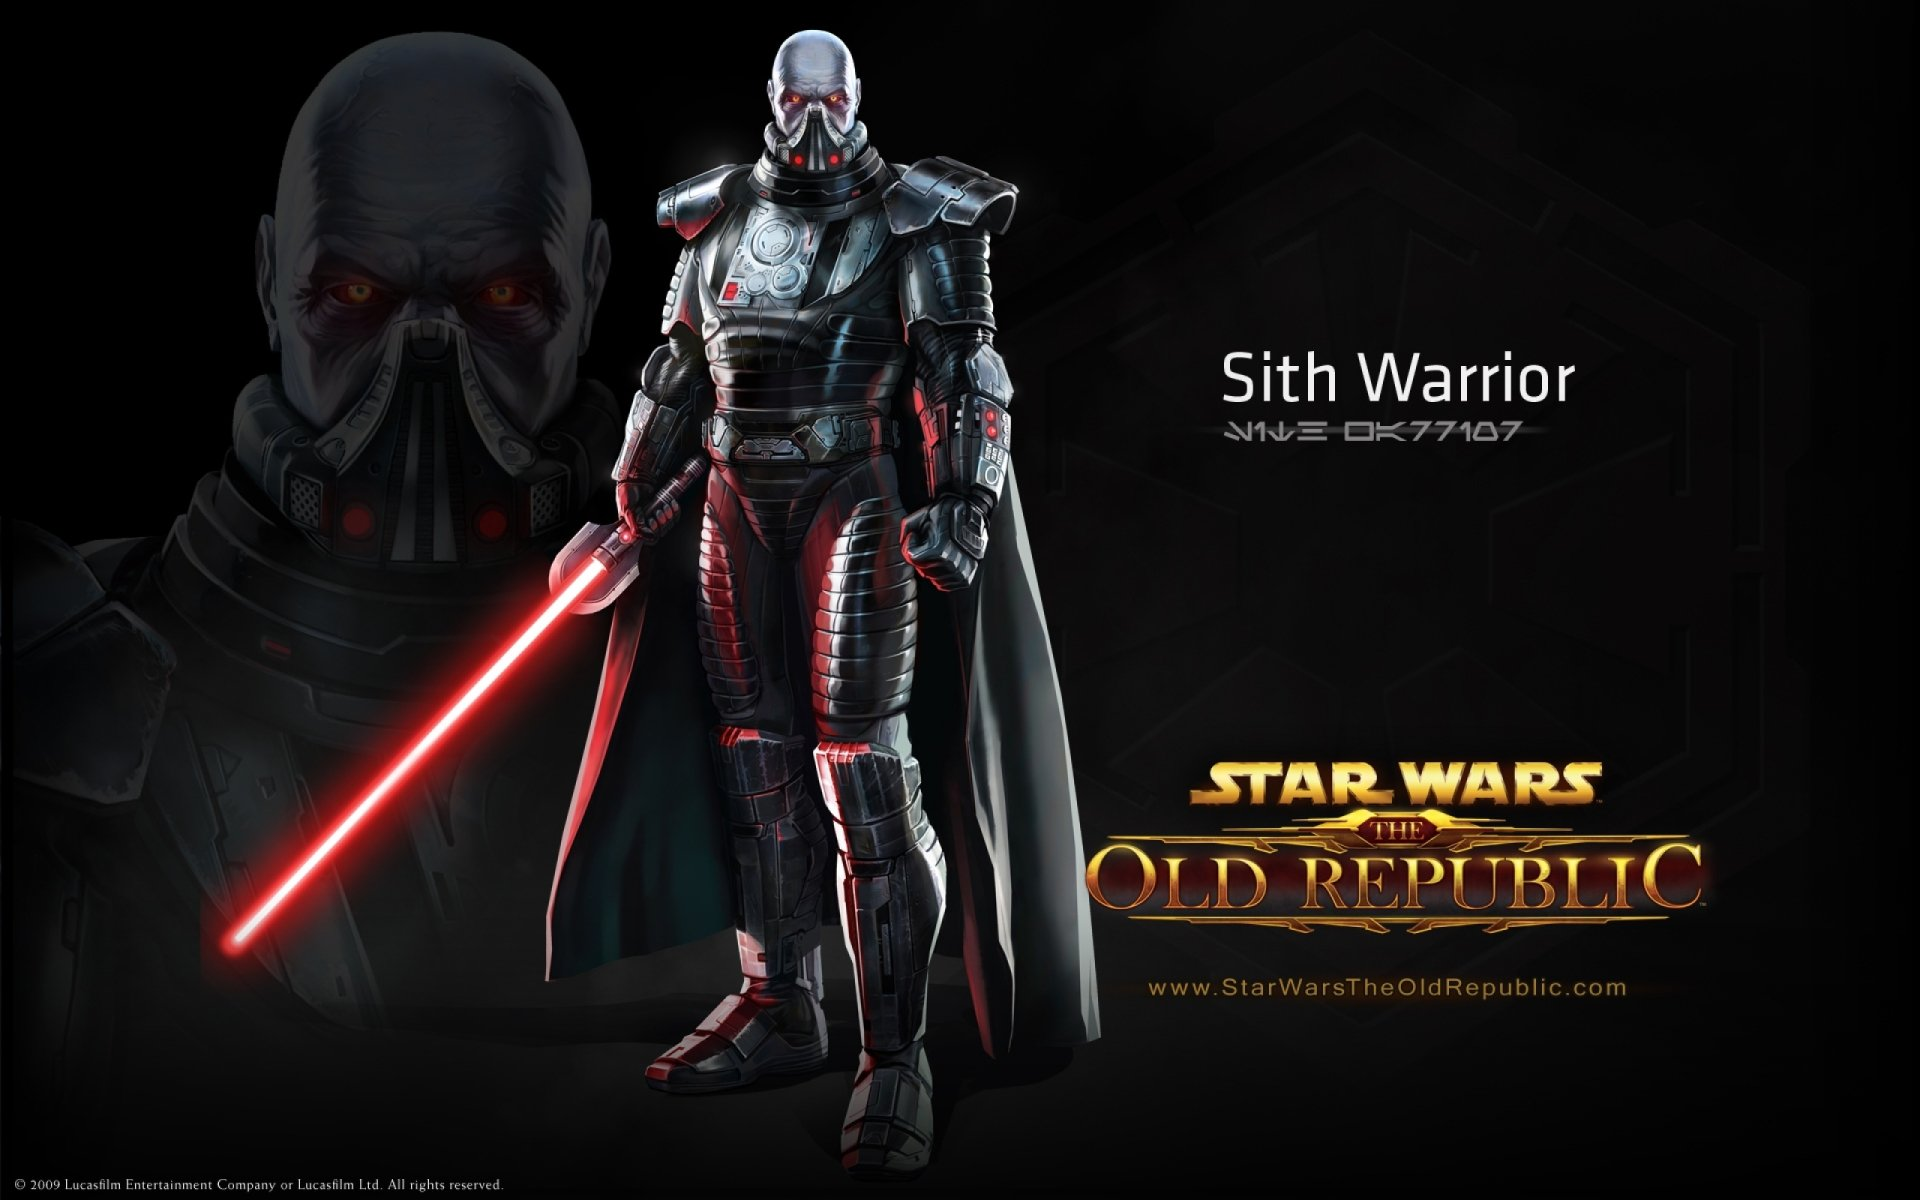 Video Game - Star Wars: The Old Republic  Sci Fi Lightsaber Sith (Star Wars) Star Wars Wallpaper